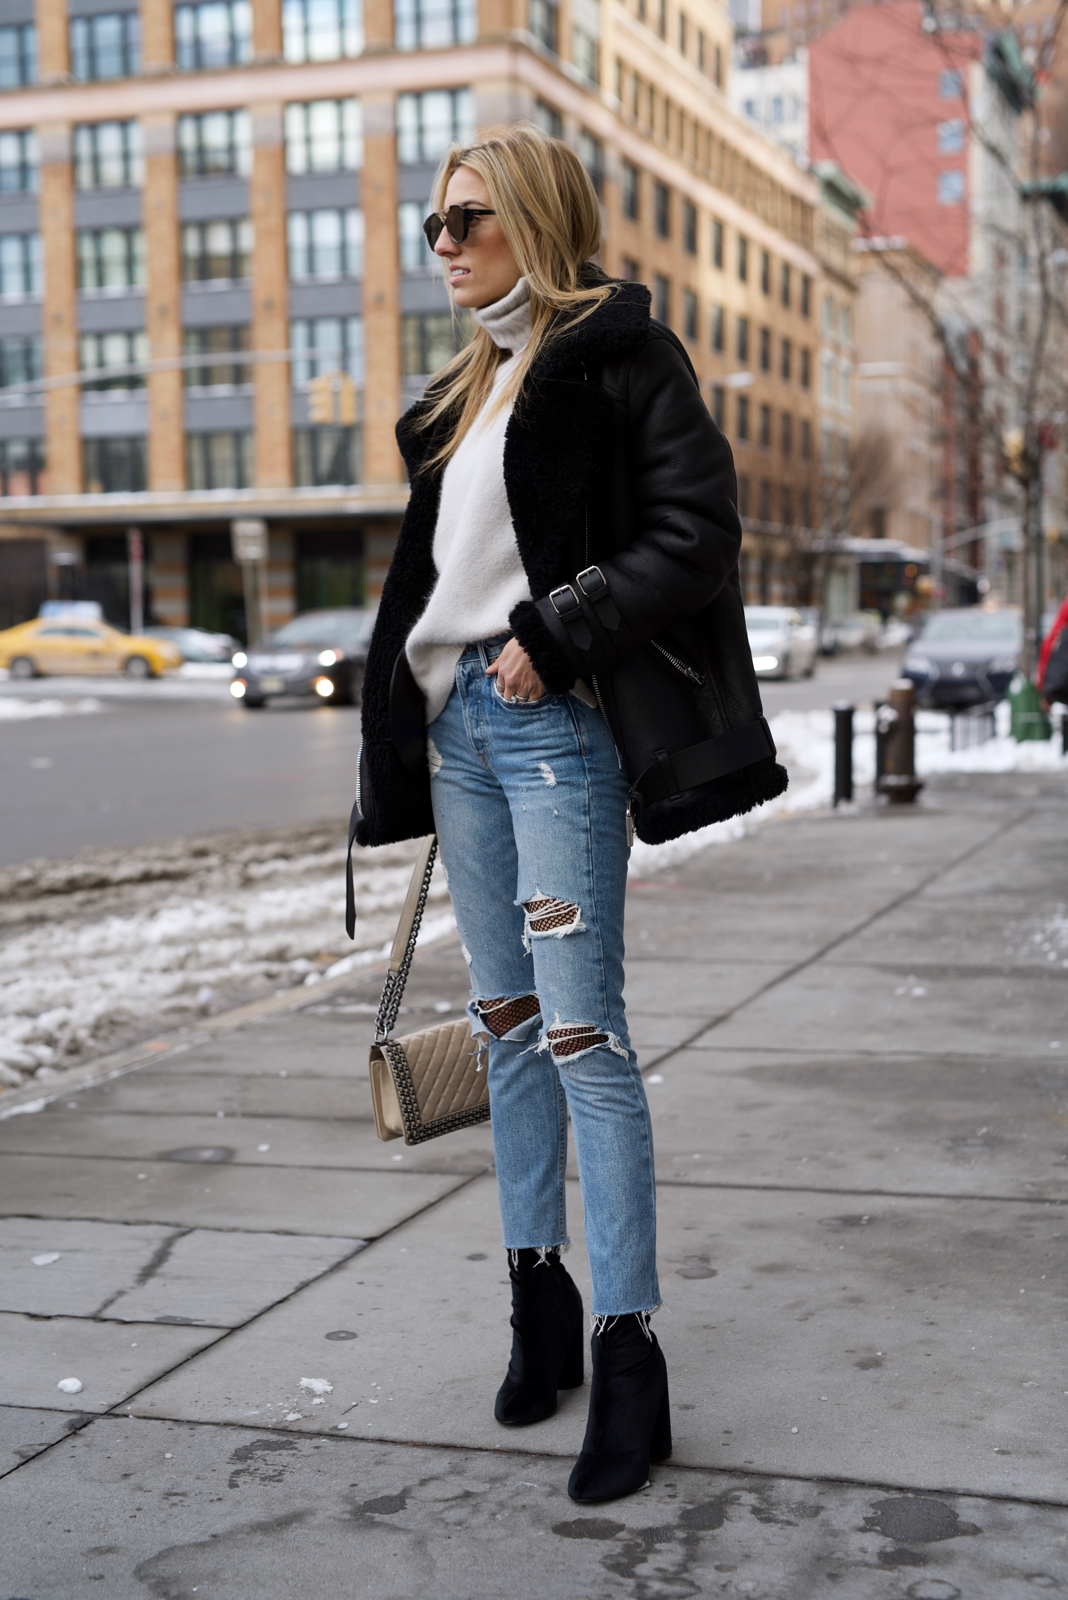 Fishnets & Ripped Jeans Trend, How to Wear Fishnets with Ripped jeans - 1 of 22 (3)